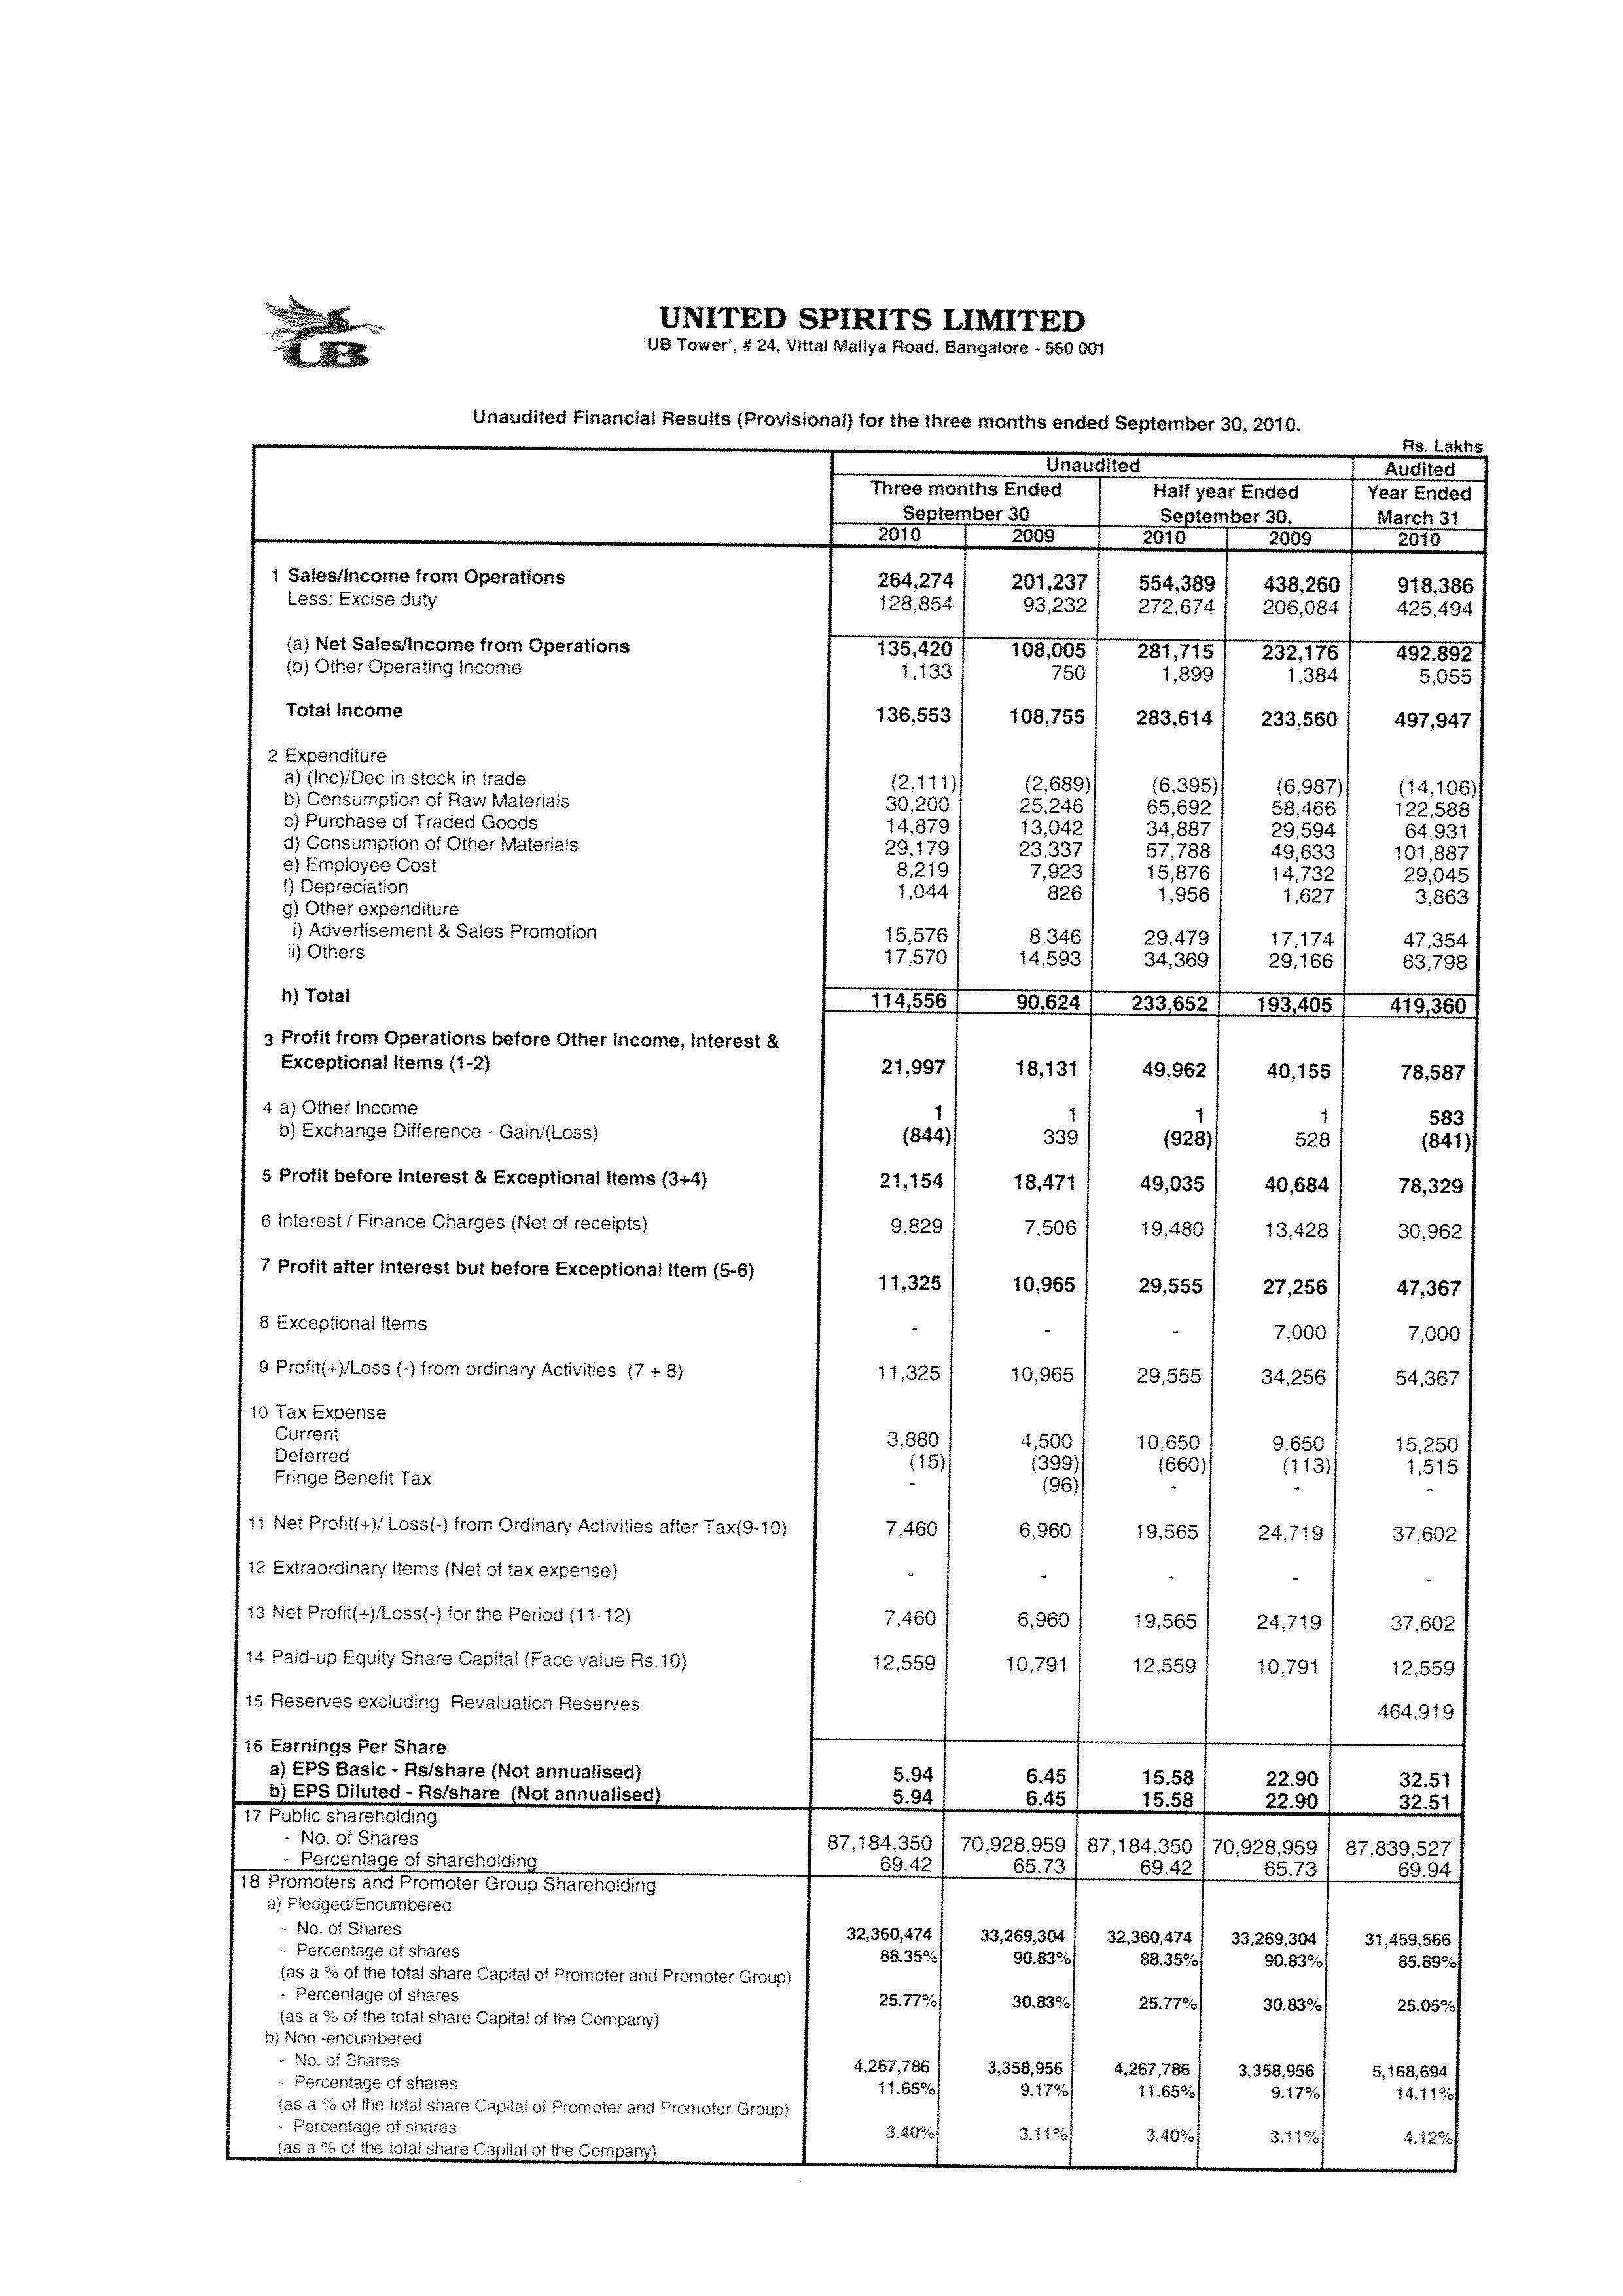 Unaudited Financial Results (Provisional) for the Quarter ended September 30, 2010